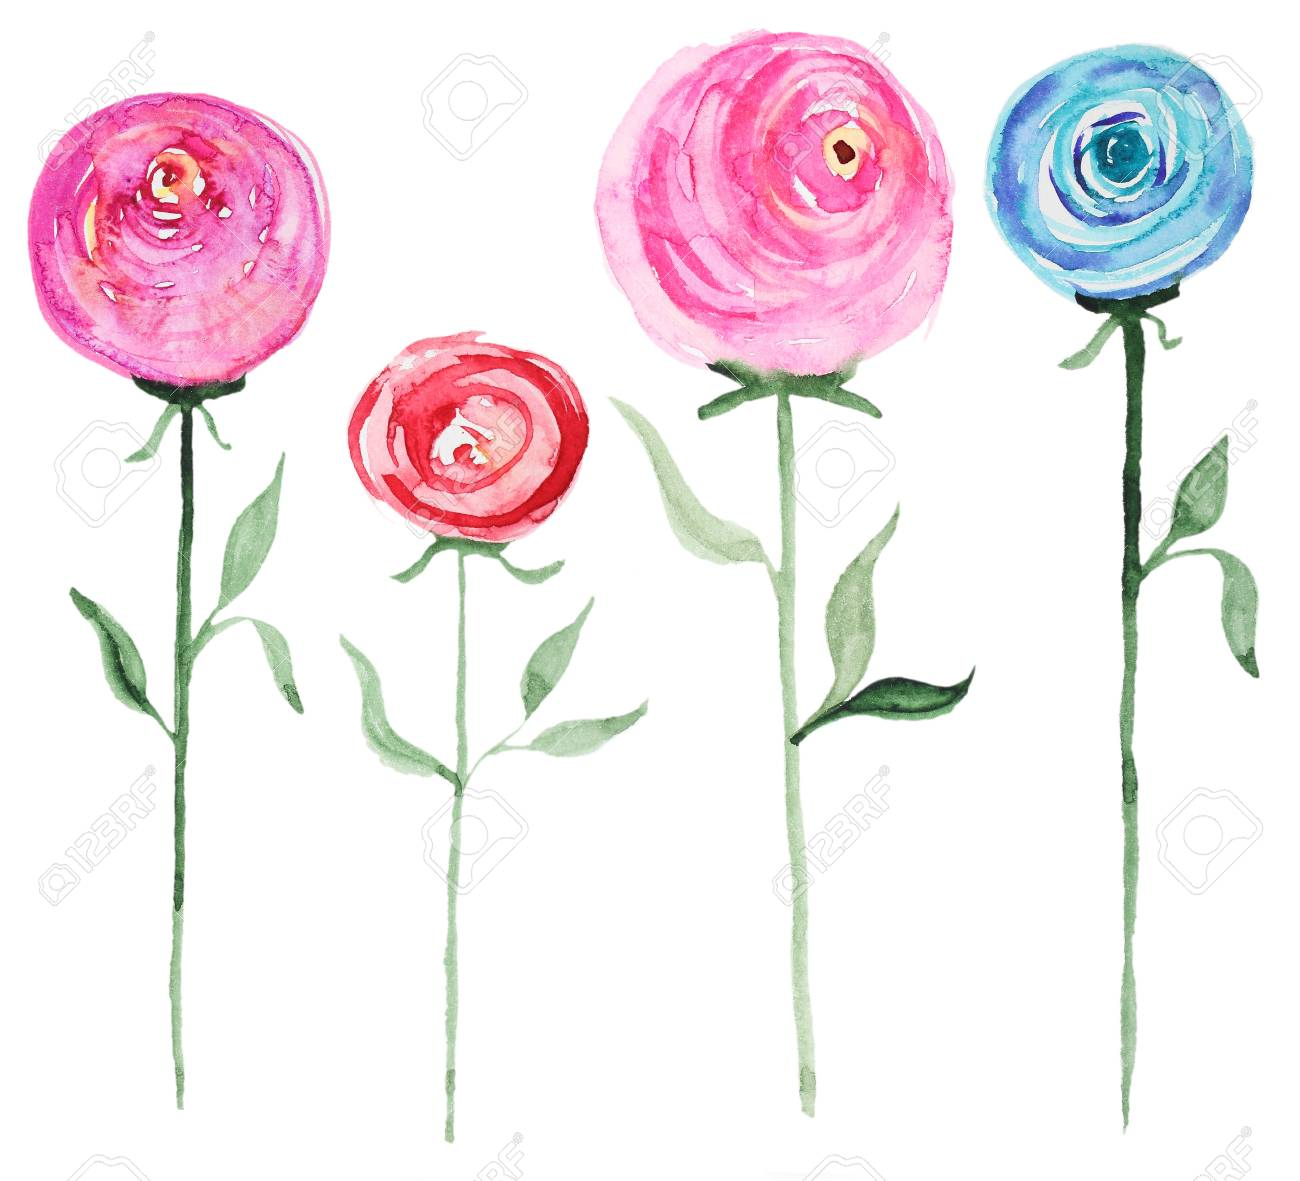 Collection of abstract watercolor rose flowers set of beautiful collection of abstract watercolor rose flowers set of beautiful watercolor rose flowers on white background izmirmasajfo